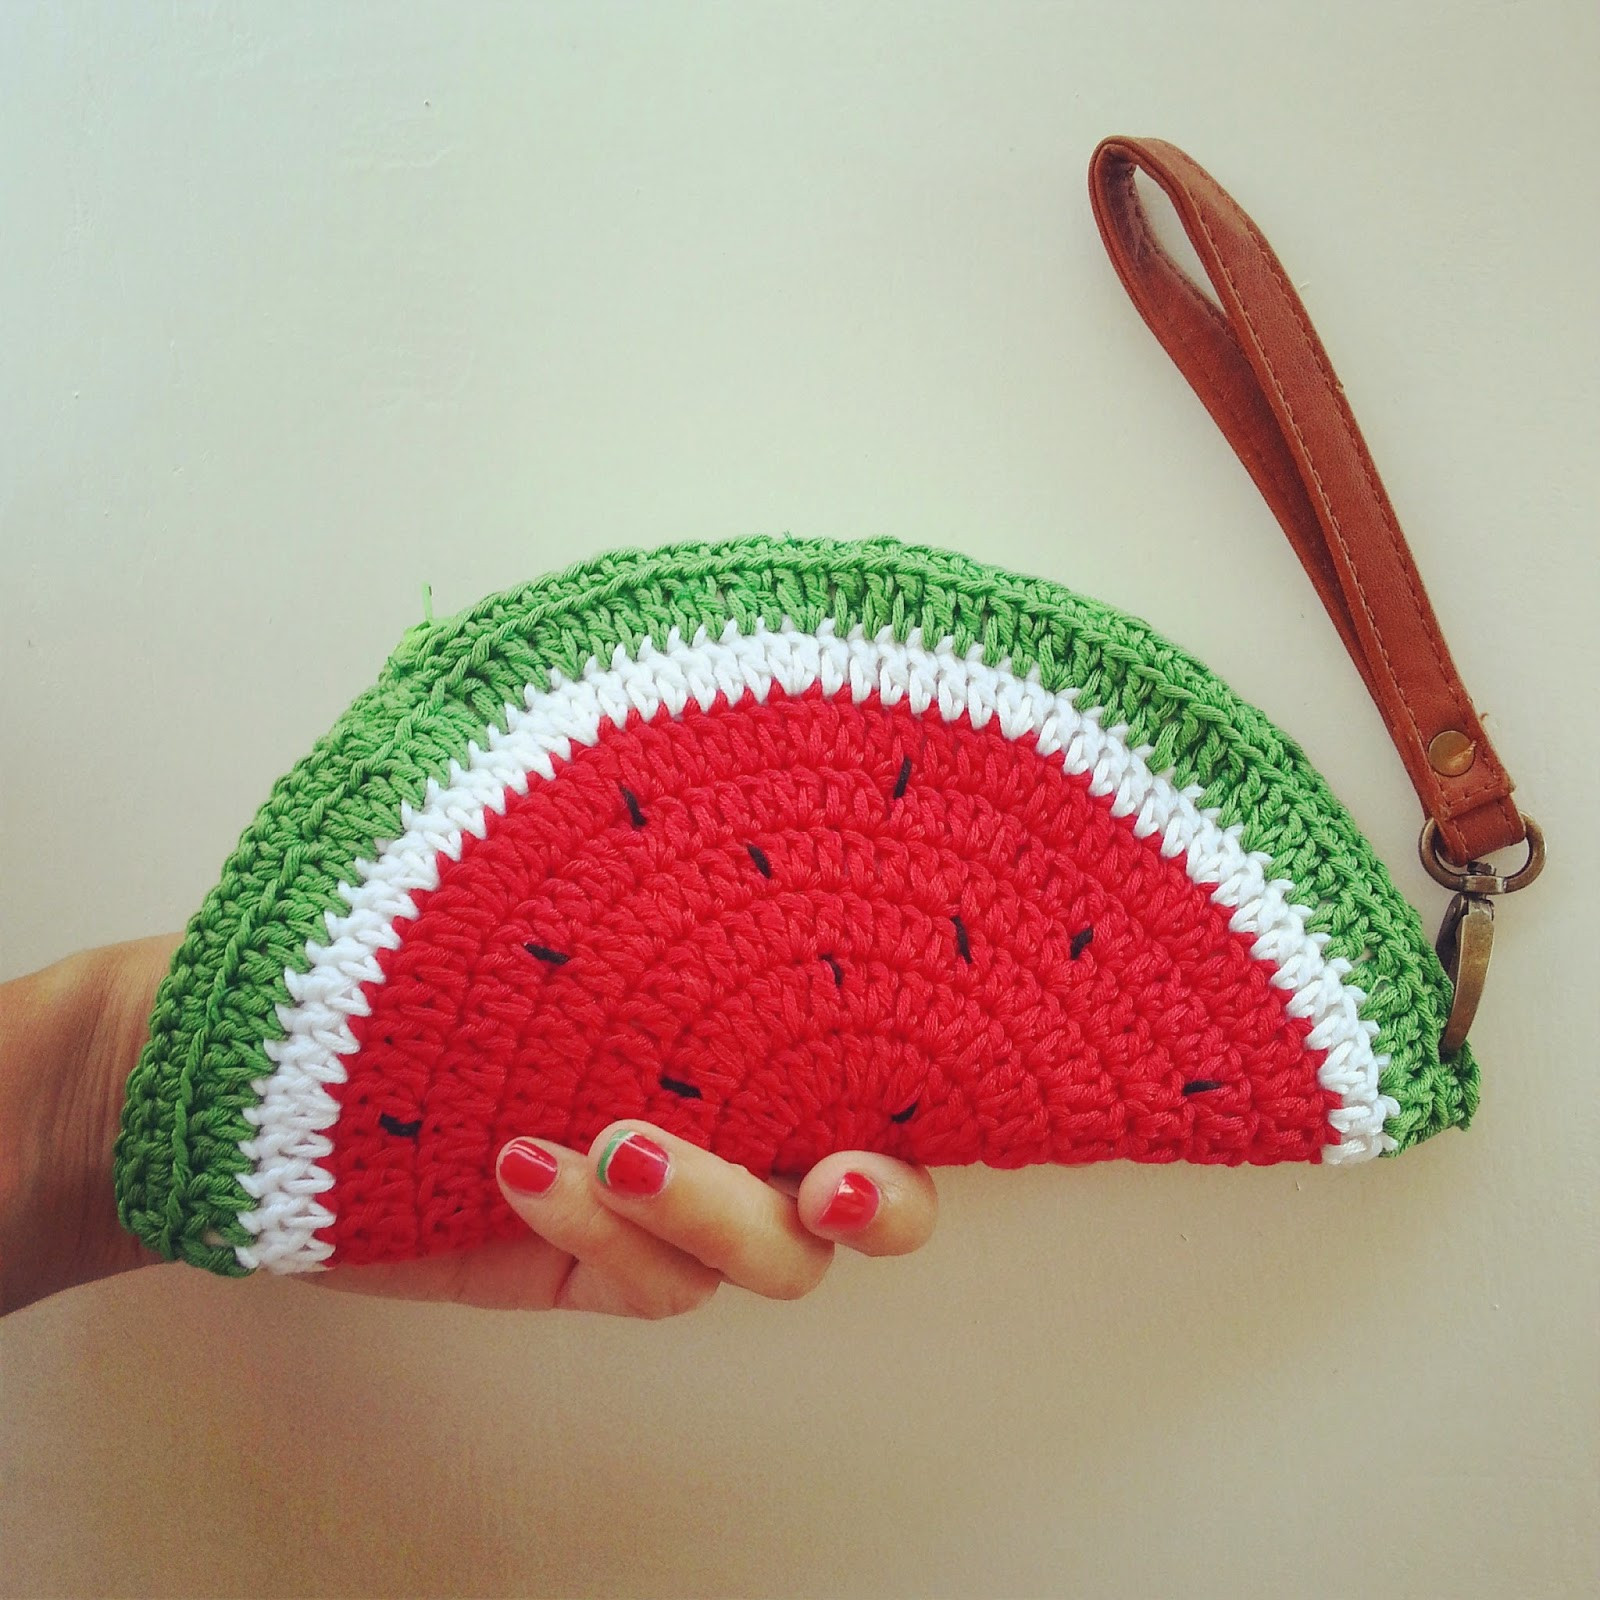 Crochet Pouch Elegant Fabcroc Free Pattern Watermelon Coin Purse Crochet Of Awesome 48 Pics Crochet Pouch